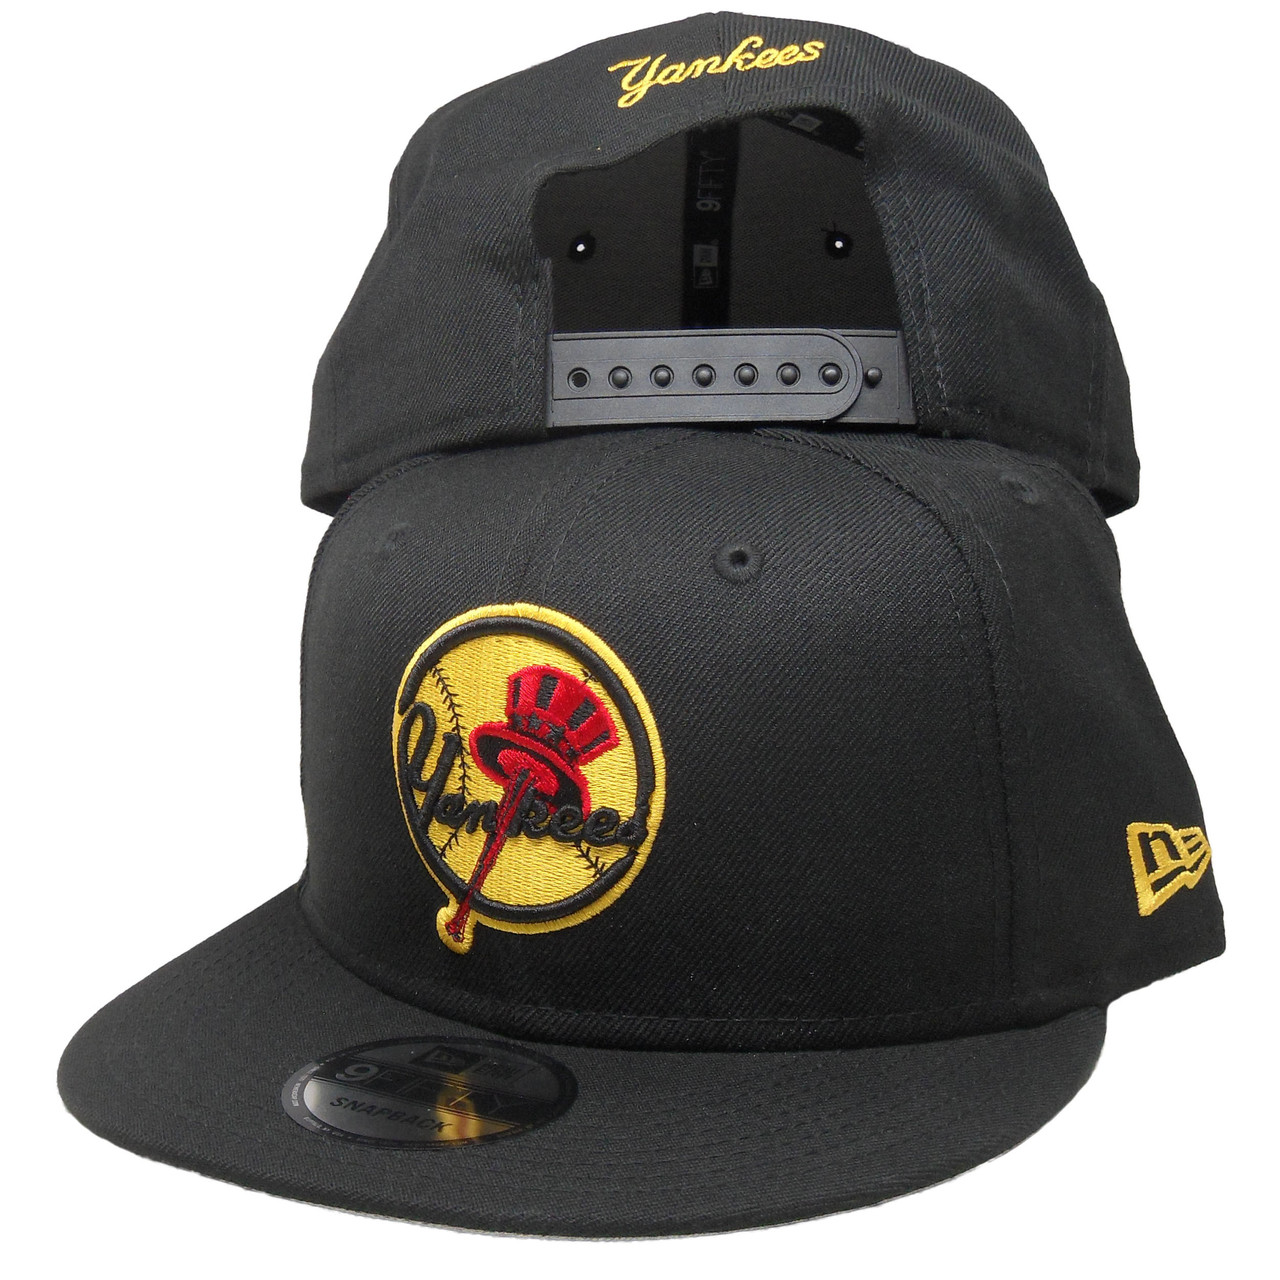 d4bc7ca8 New York Yankees New Era Custom 9Fifty Snapback - Black, Red, Yellow -  ECapsUnlimited.com